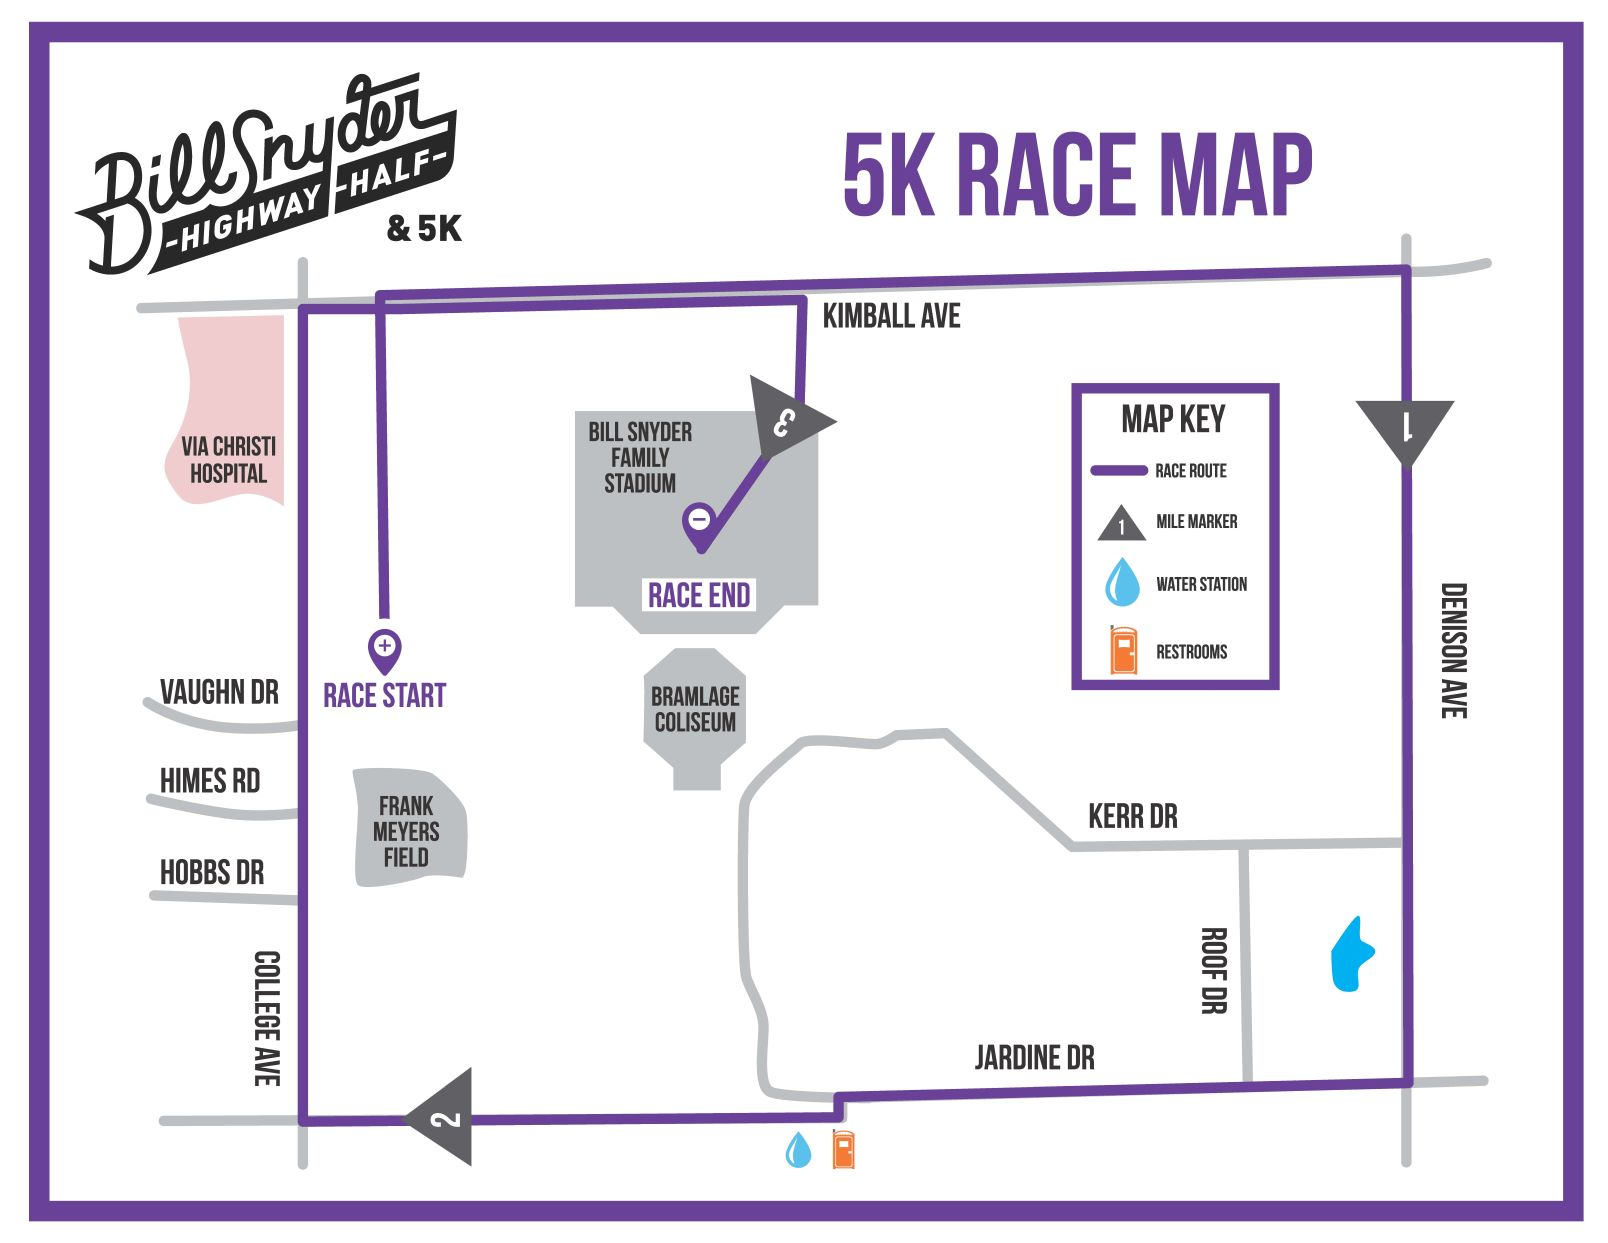 Course Map — Bill Snyder Highway Half & 5K on ksu map, westfield state map, k-state equestrian team, k-state football helmet, k-state alma mater, k-state moore hall, westmoreland kansas city map, emporia map, k-state manhattan kansas, k-state athletics, k-state phase 4, k-state clip art, wichita state university parking map, k-state coloring pages, k-state webmail, k-state marching band, k-state volleyball, k-state online, k-state backgrounds,